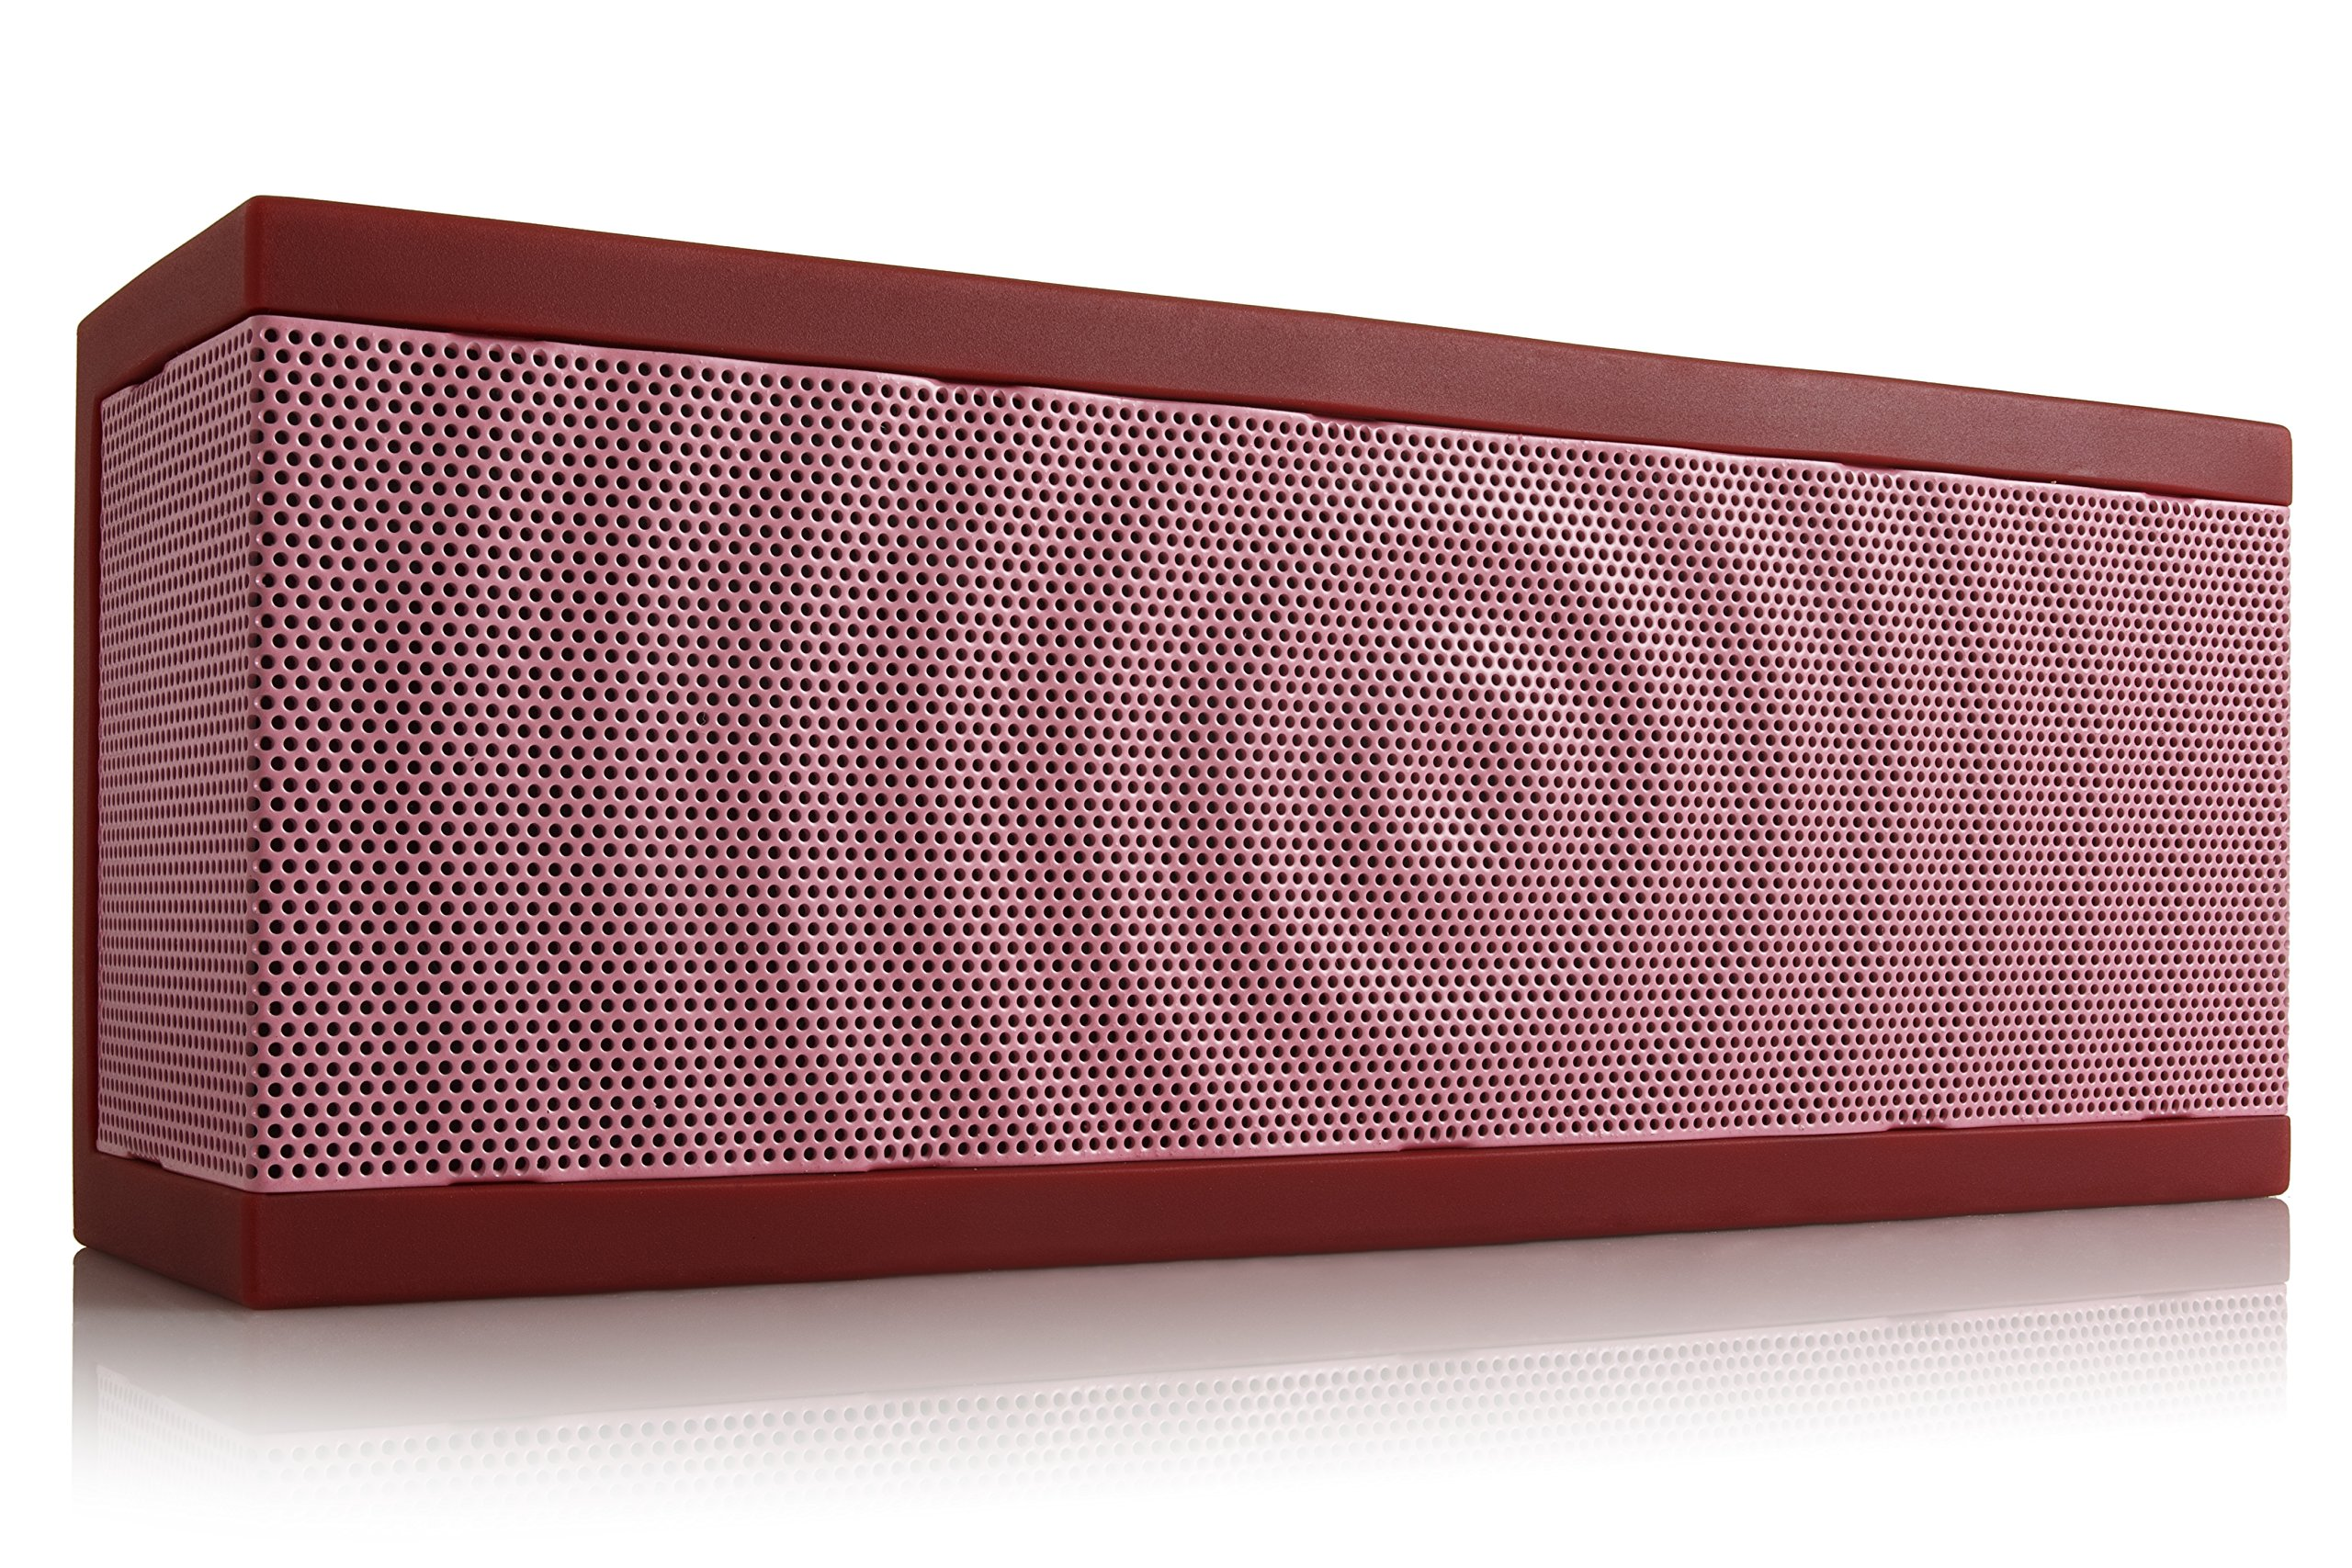 SoundBlock Custom Bluetooth Wireless Stereo Speaker for Computers and Smartphones. Bluetooth 3.0 Technology with Built-in Speakerphone and 10 Hour Rechargeable Battery. In Red/Pink